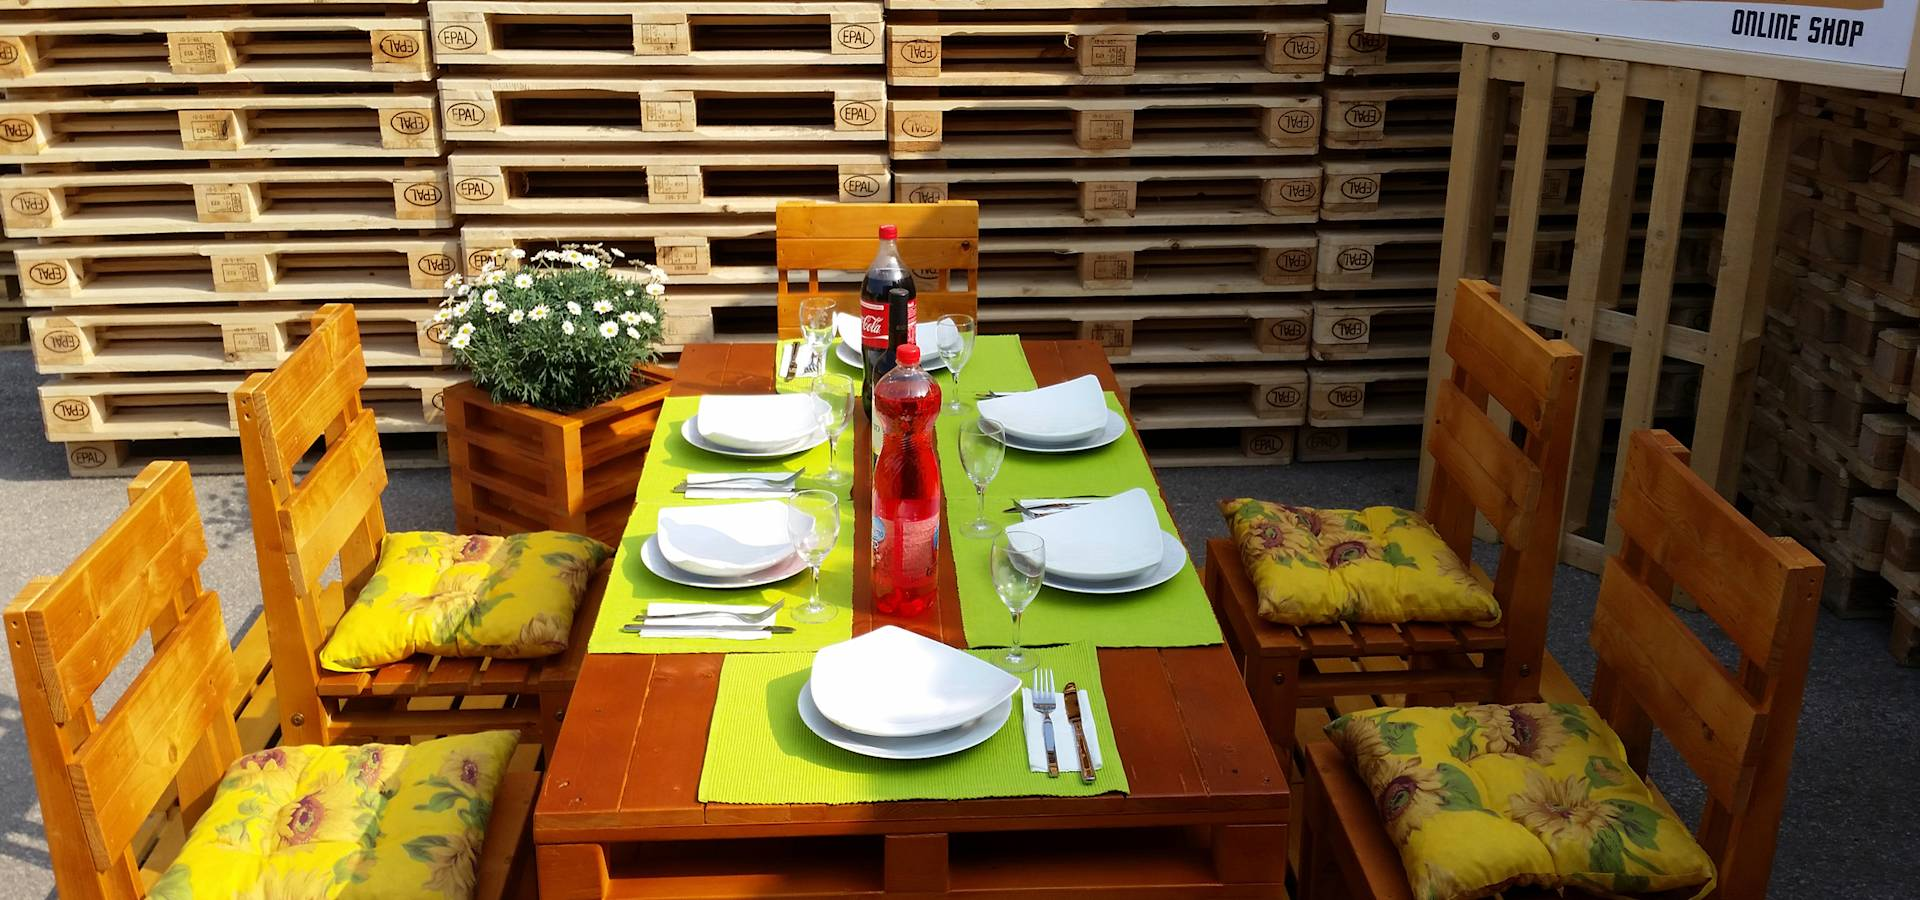 Arredamento pallets design kasten kastbouwers in pineta for Arredamento pallets